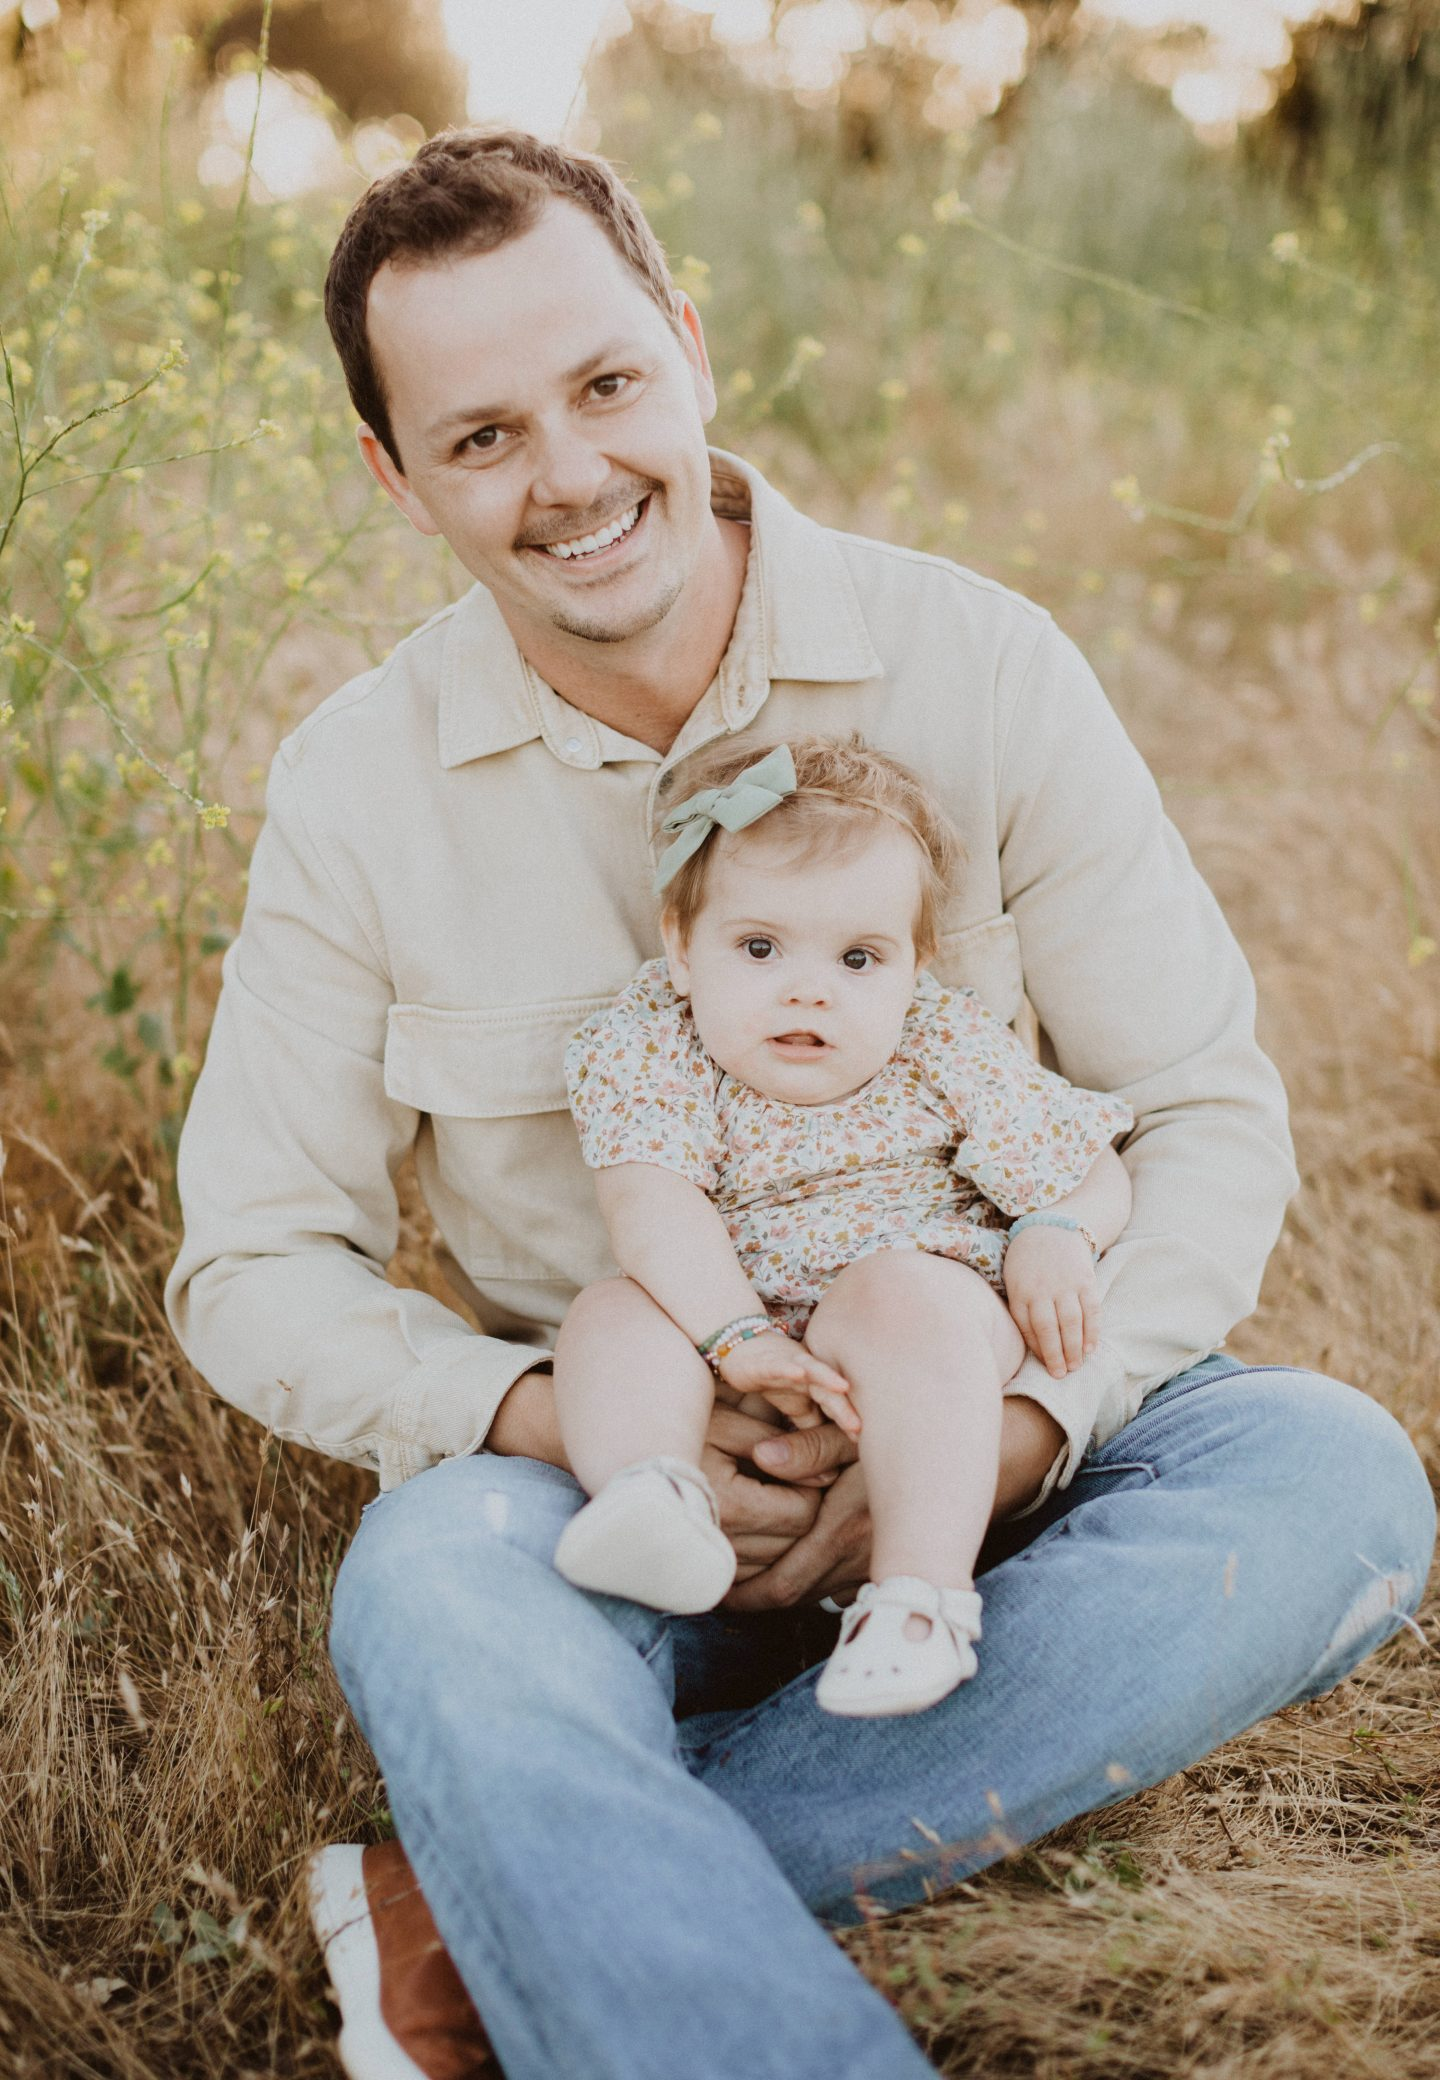 Family Photo Ideas by popular San Diego lifestyle blog, Navy Grace: image of a dad sitting in a field while holding his baby daughter and wearing a Rylee and Cru floral print dress, Nordstrom COLE HAAN GrandPro Low Top Sneaker, and Nordstrom FRANK AND OAK Marled Chambray Button-Up Shirt.